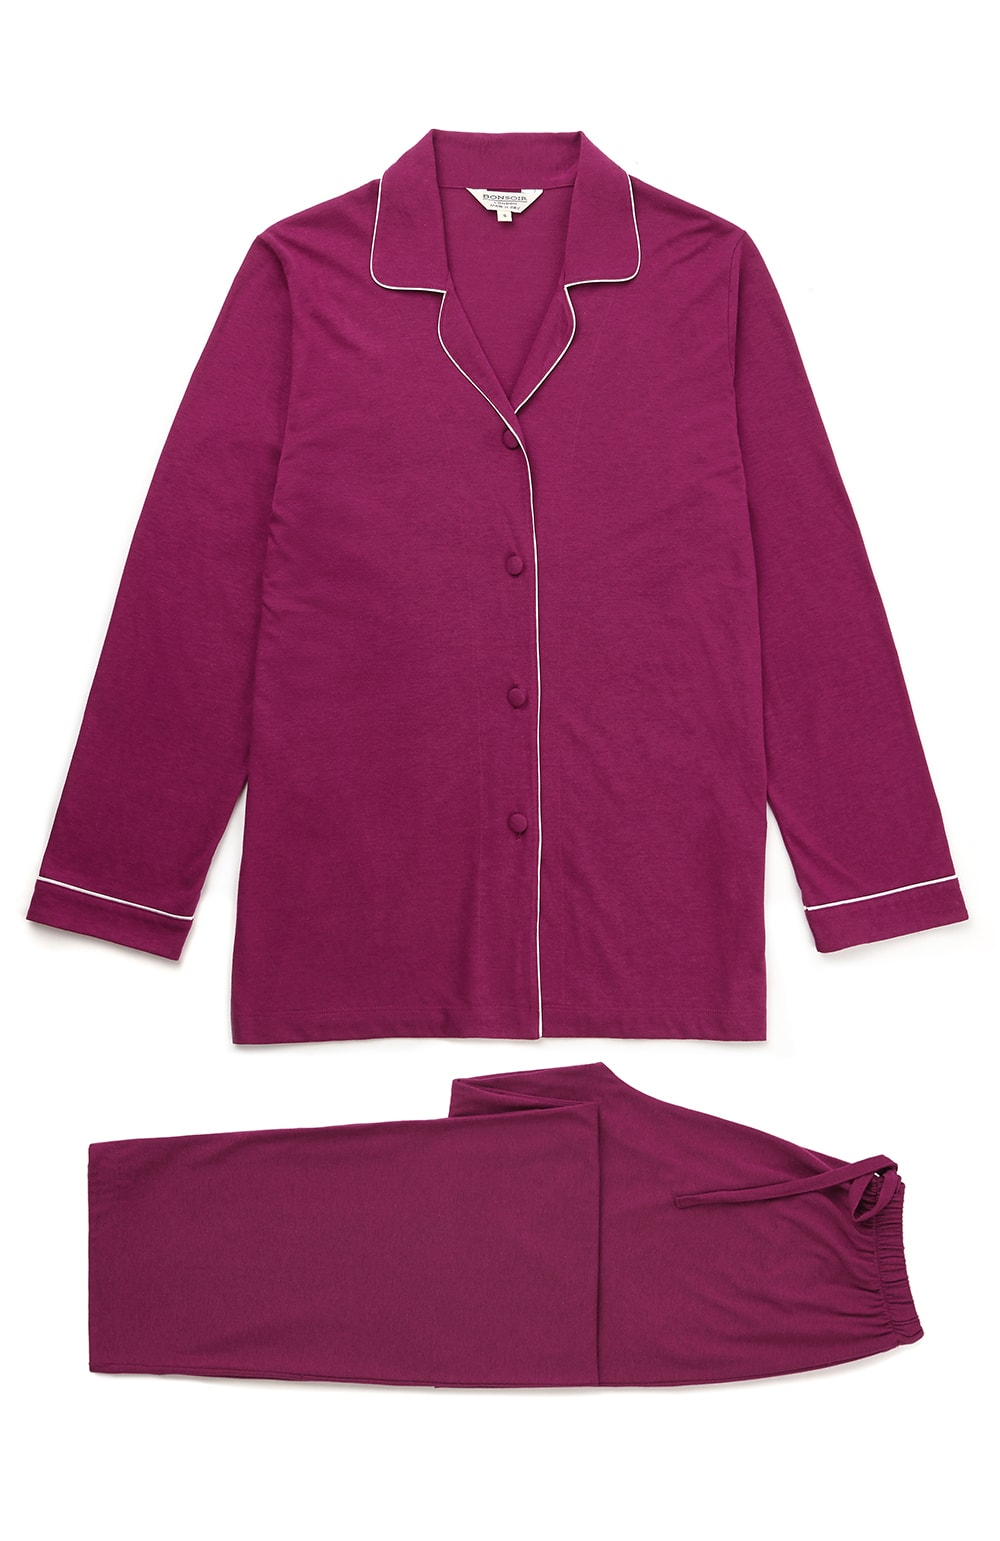 JERSEY PYJAMAS - BERRY